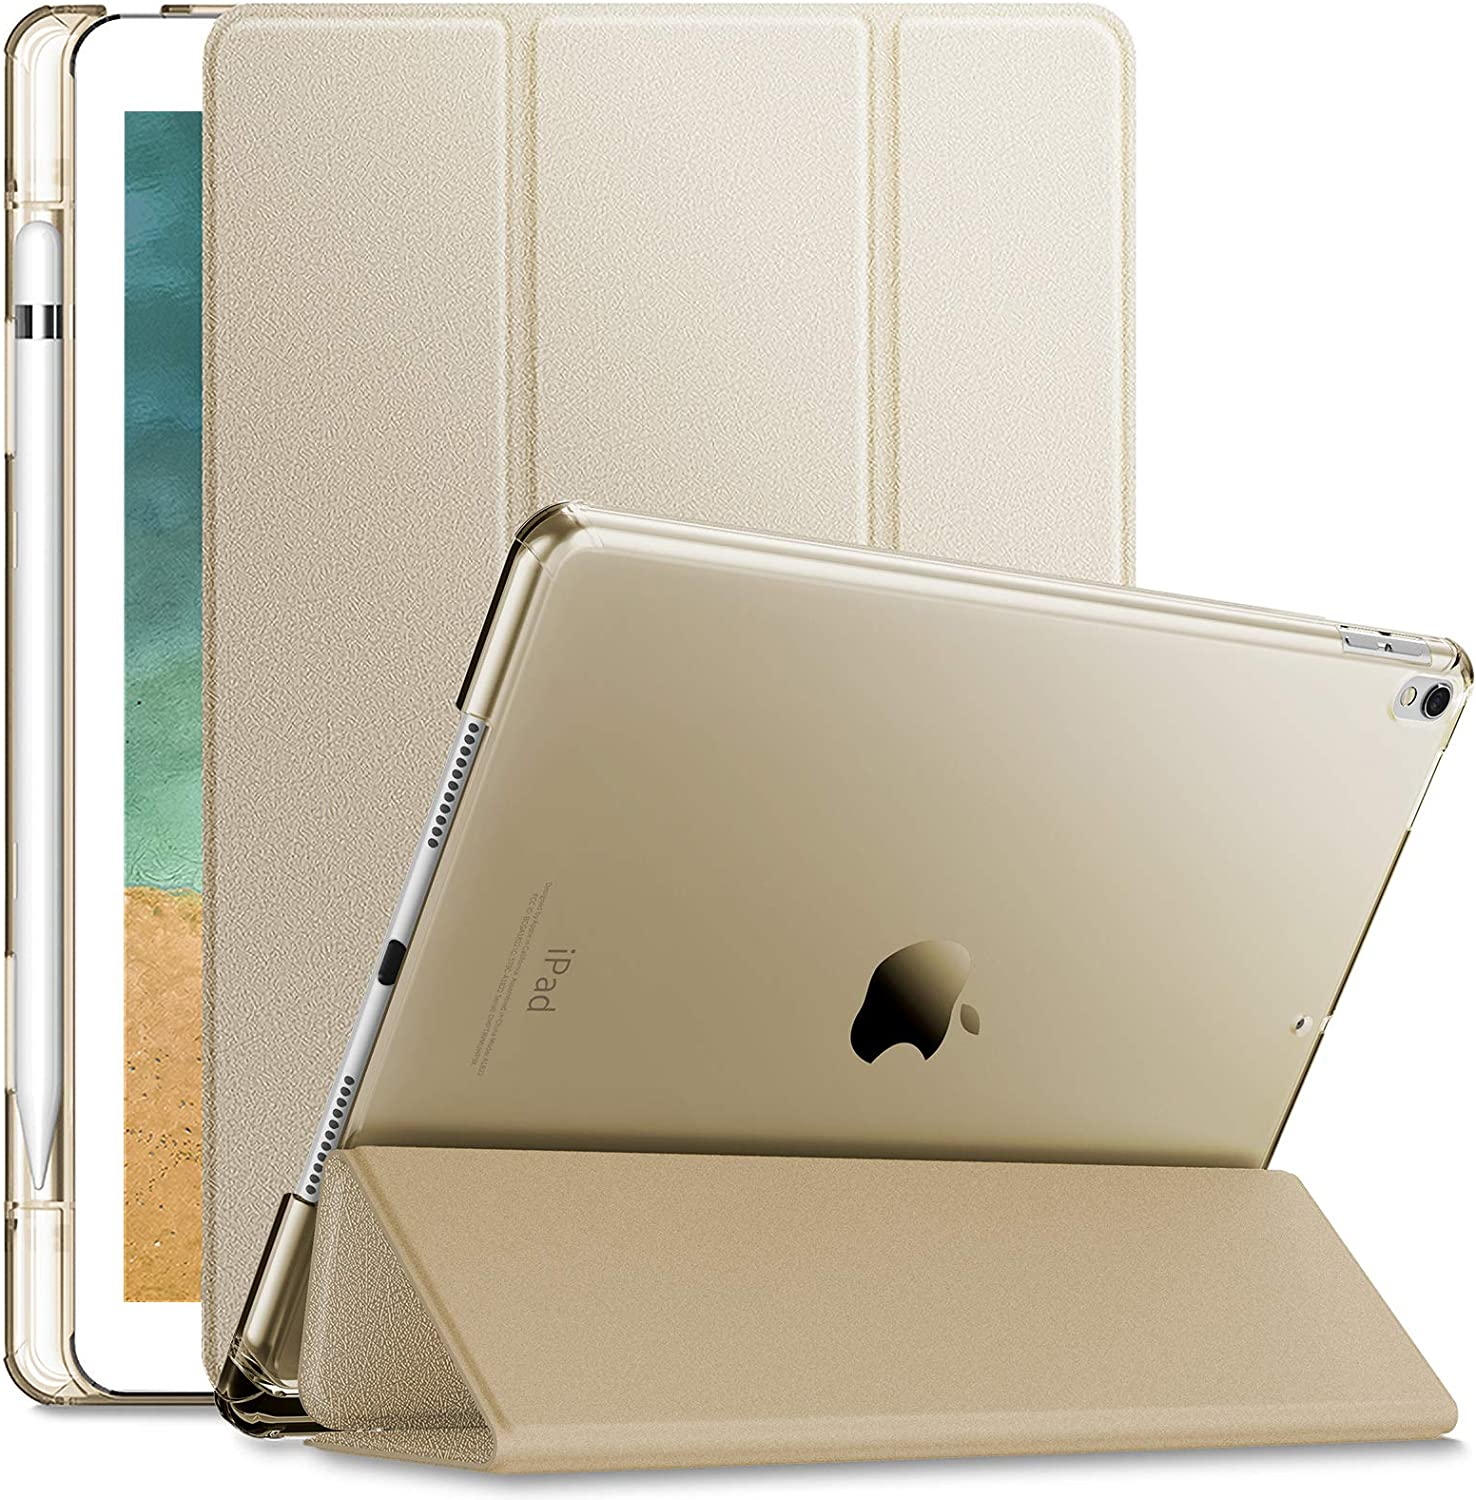 INFILAND Compatible with iPad Air 3rd Generation 2019 Case with Translucent Frosted Back Pencil Holder Fit iPad Air 3 Gen 2019 iPad Pro 10.5 2017, Gold